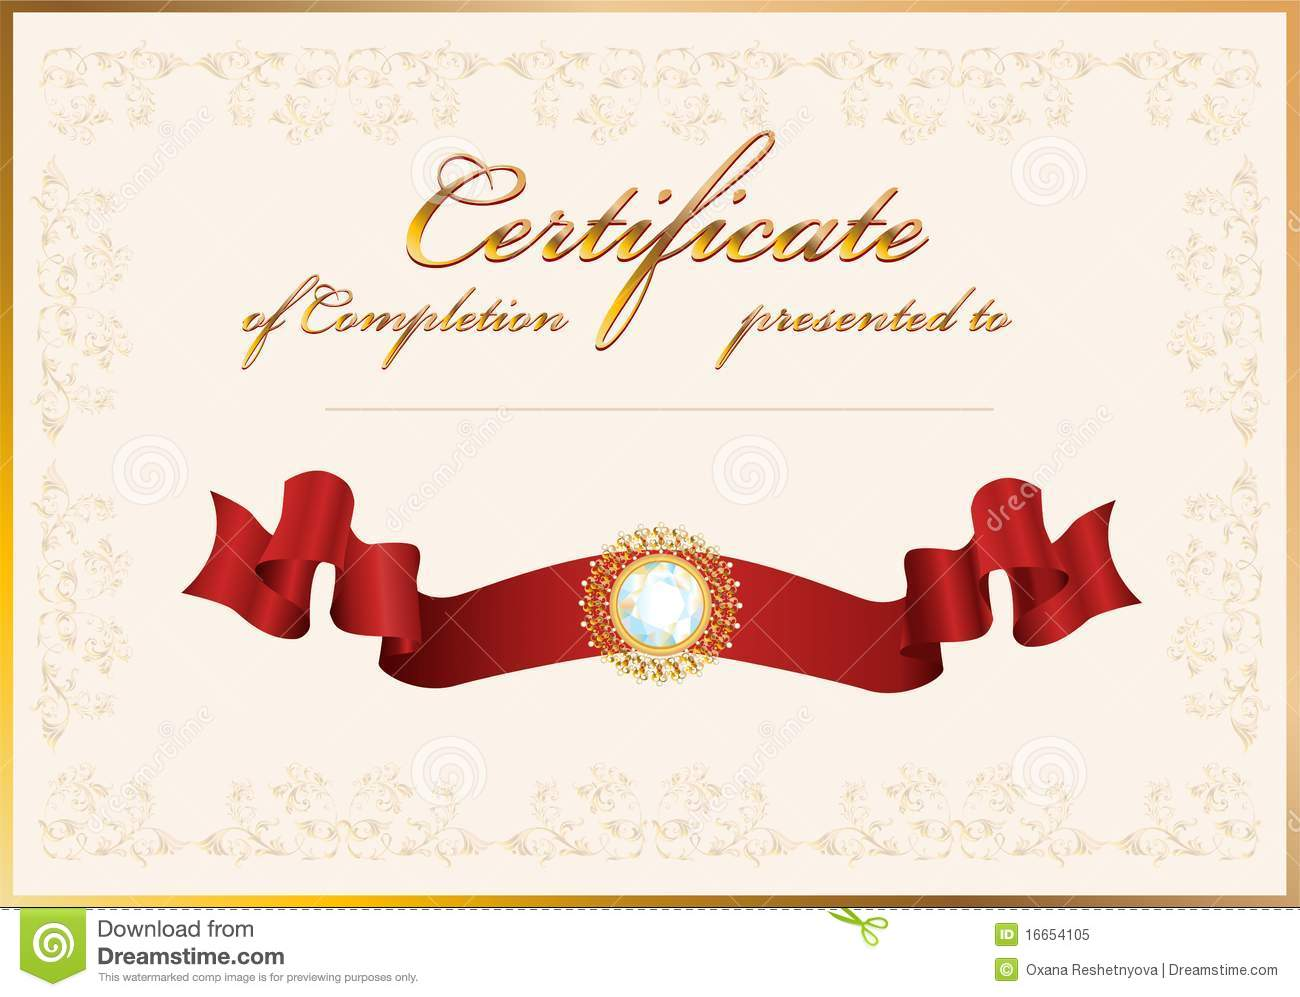 Certificate of completiontemplate stock vector illustration of certificate of completiontemplate stock vector illustration of carat gemstone 16654105 yelopaper Images